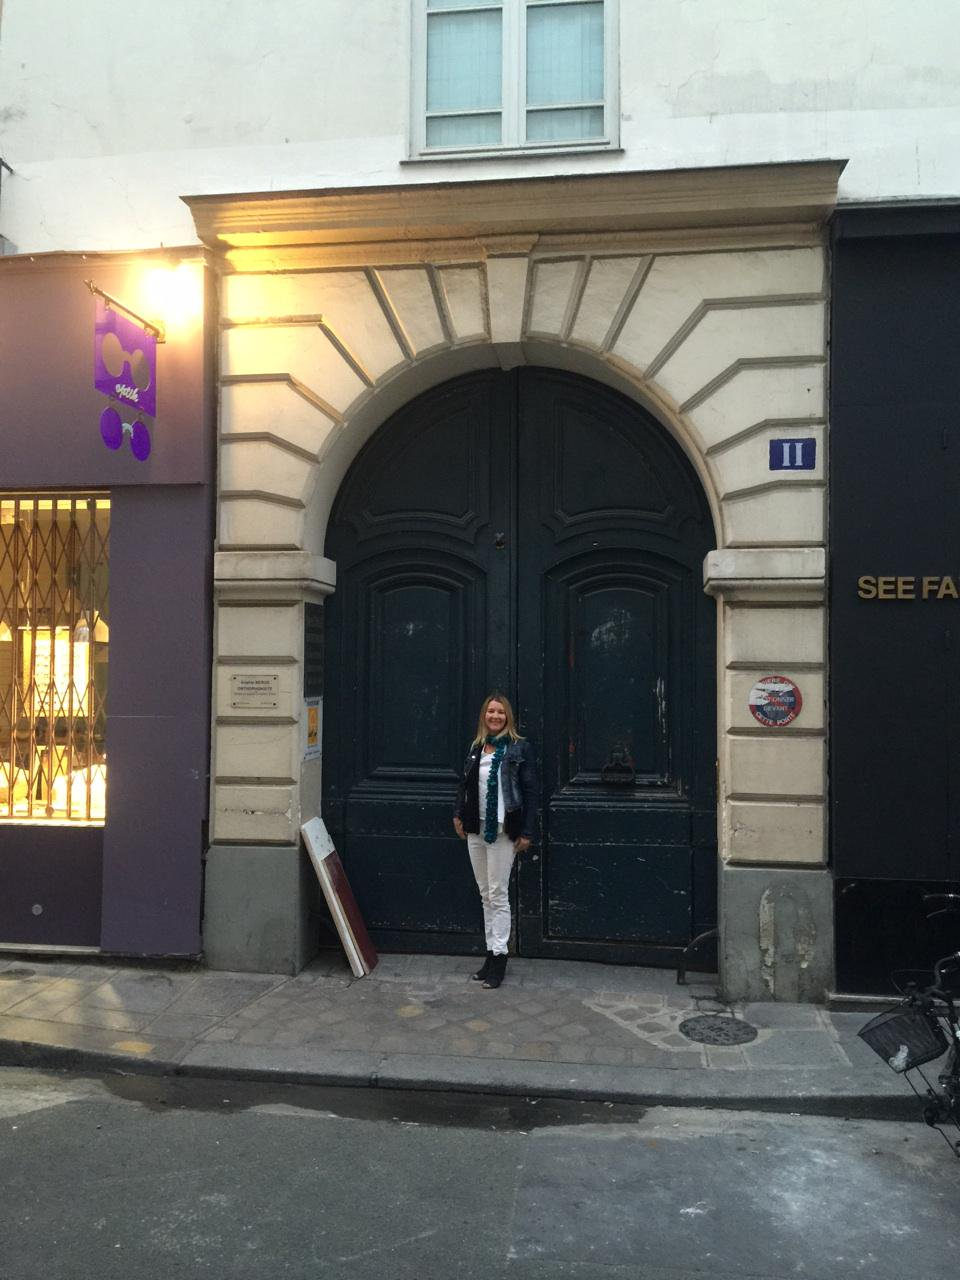 Kontor CEO Mia Lewin in Paris earlier this year to celebrate the opening of an office there.